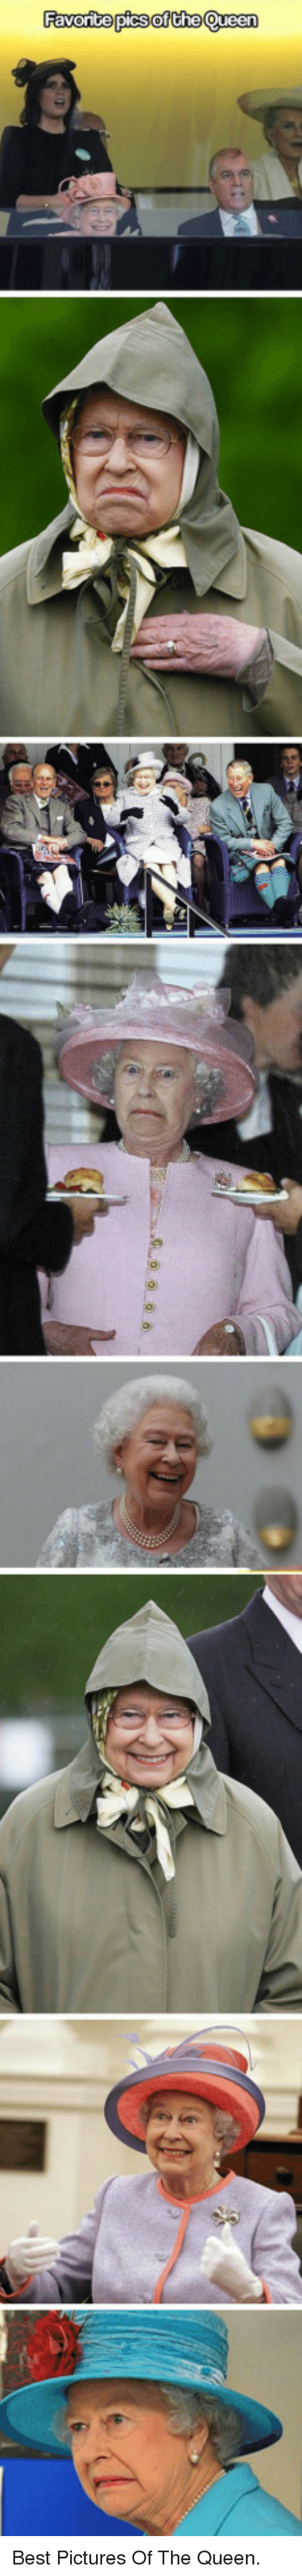 Best Pictures: <p>Best Pictures Of The Queen.</p>